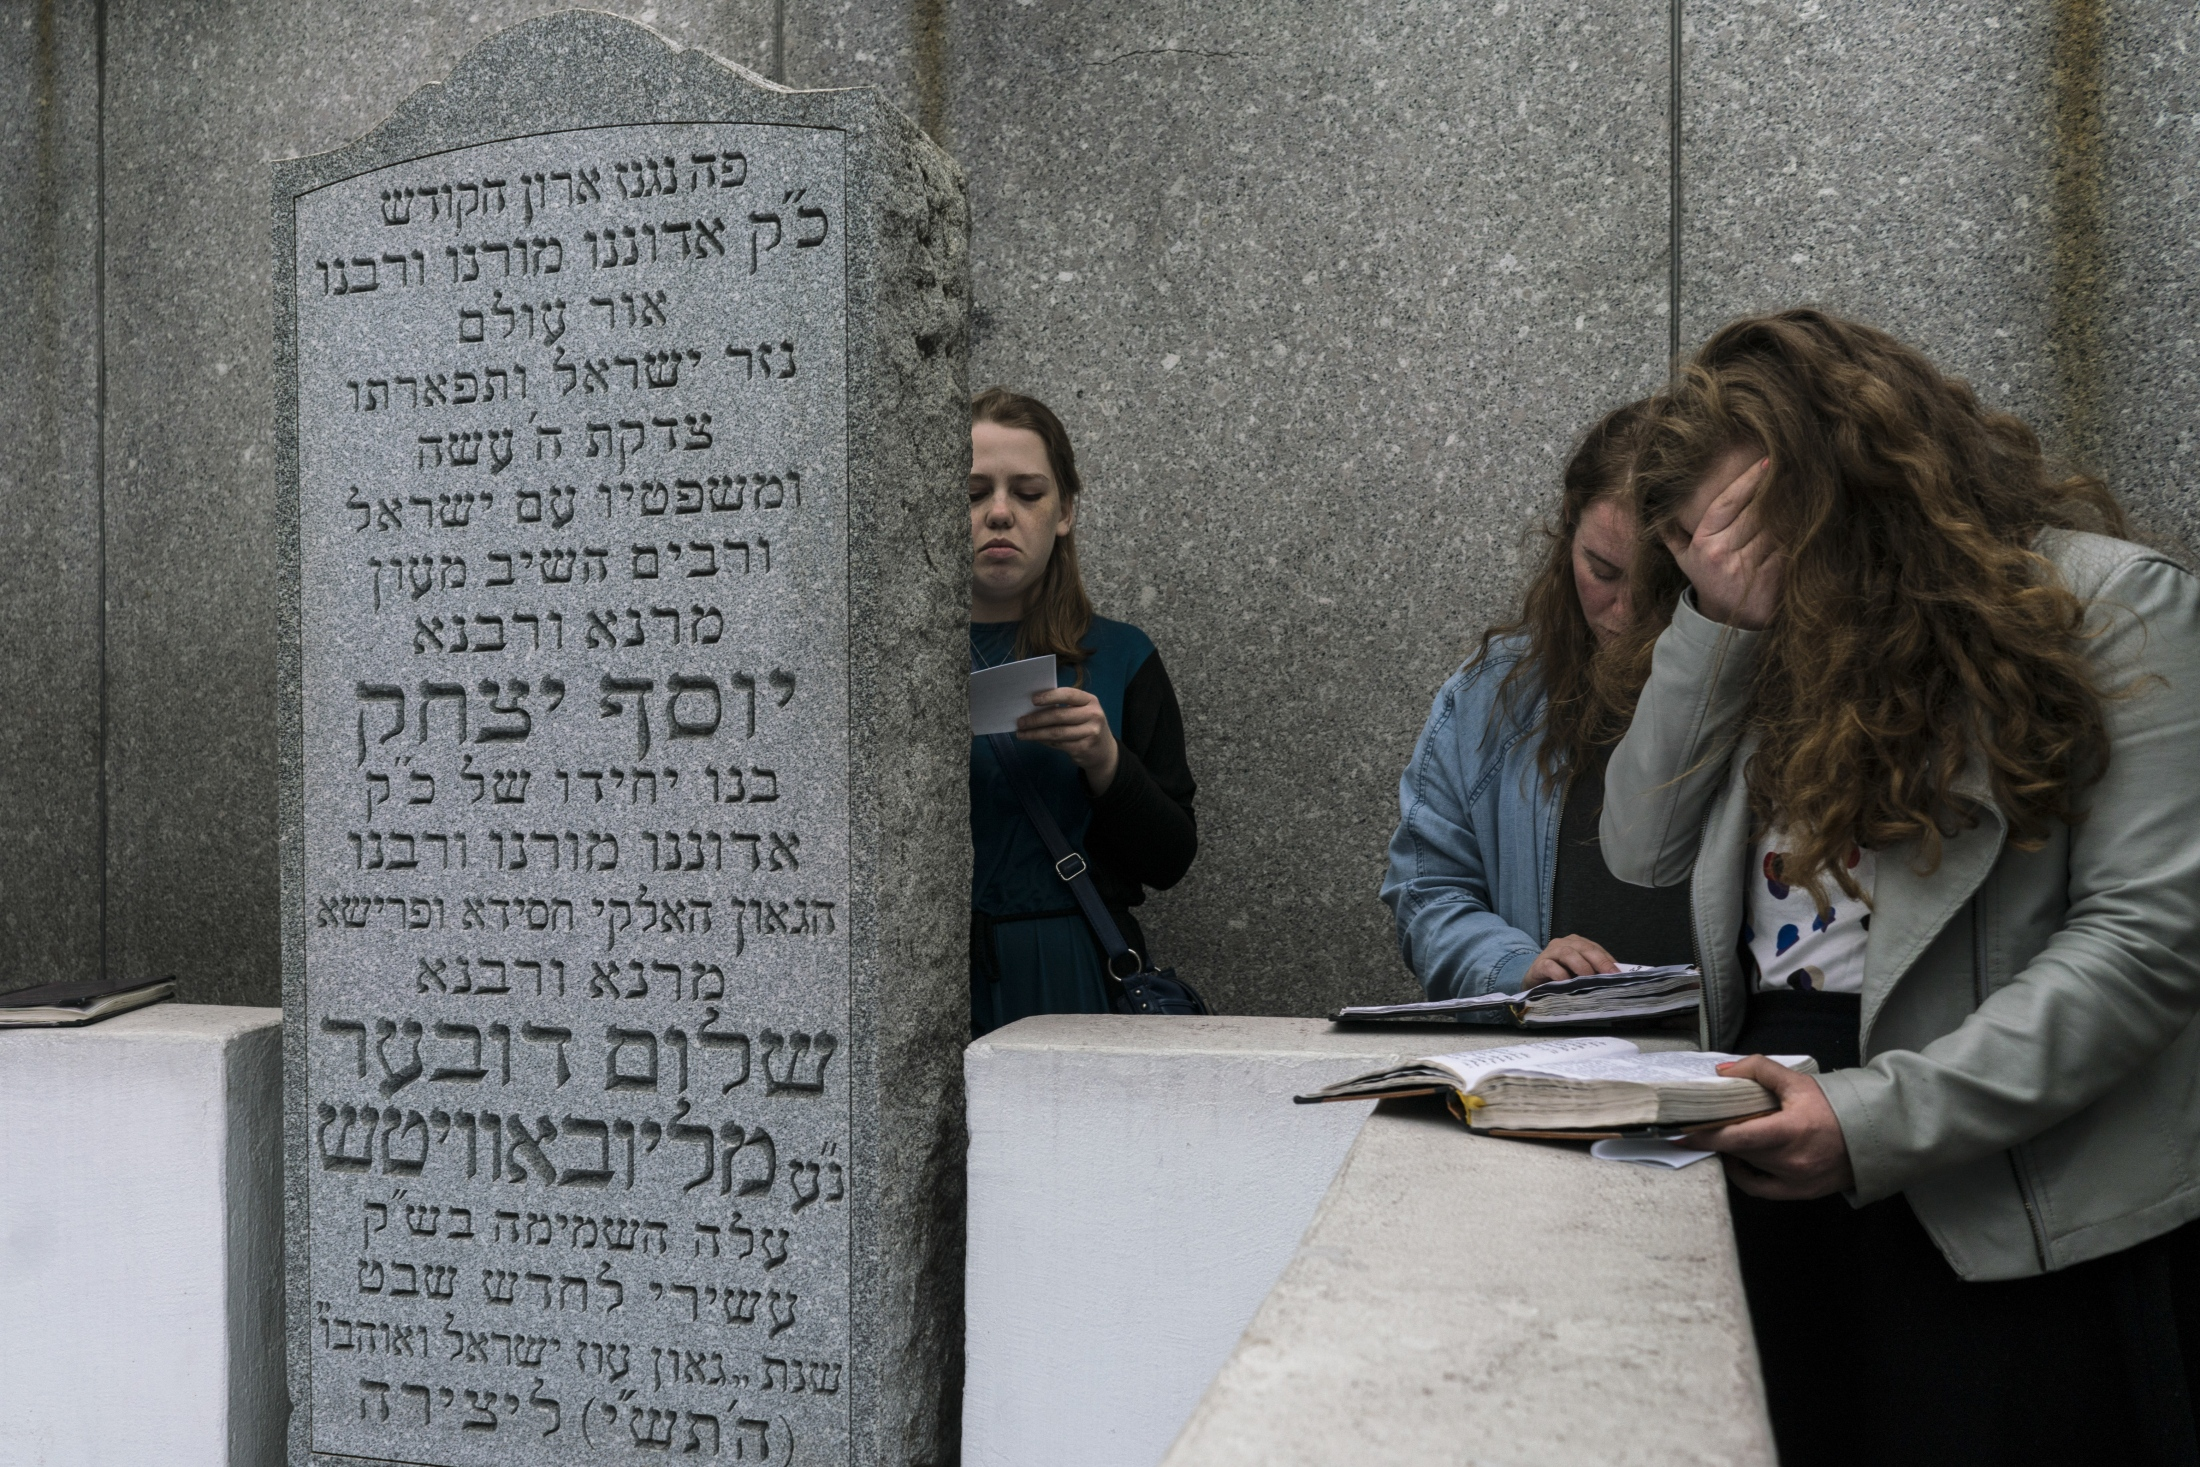 Lubavitchers pray at the Rebbe's tomb at the Chabad Lubavitch Ohel, Queens NY. Visitors leave slips of paper with written prayers on top of his grave.